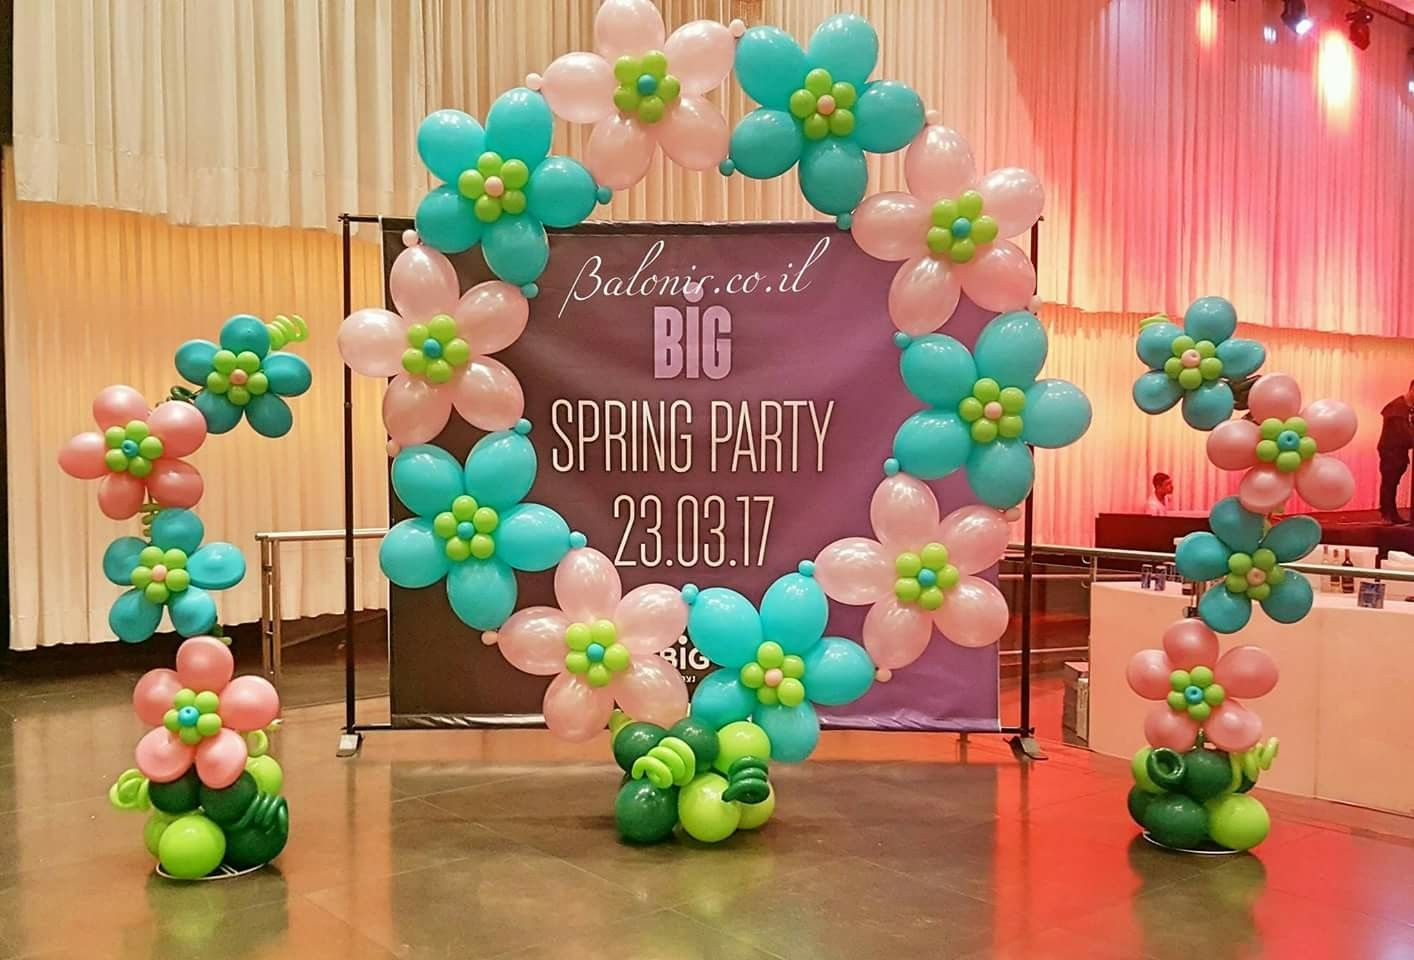 Decoration De Ballon Spring Decoration Balloon Flowers Balloondecoration